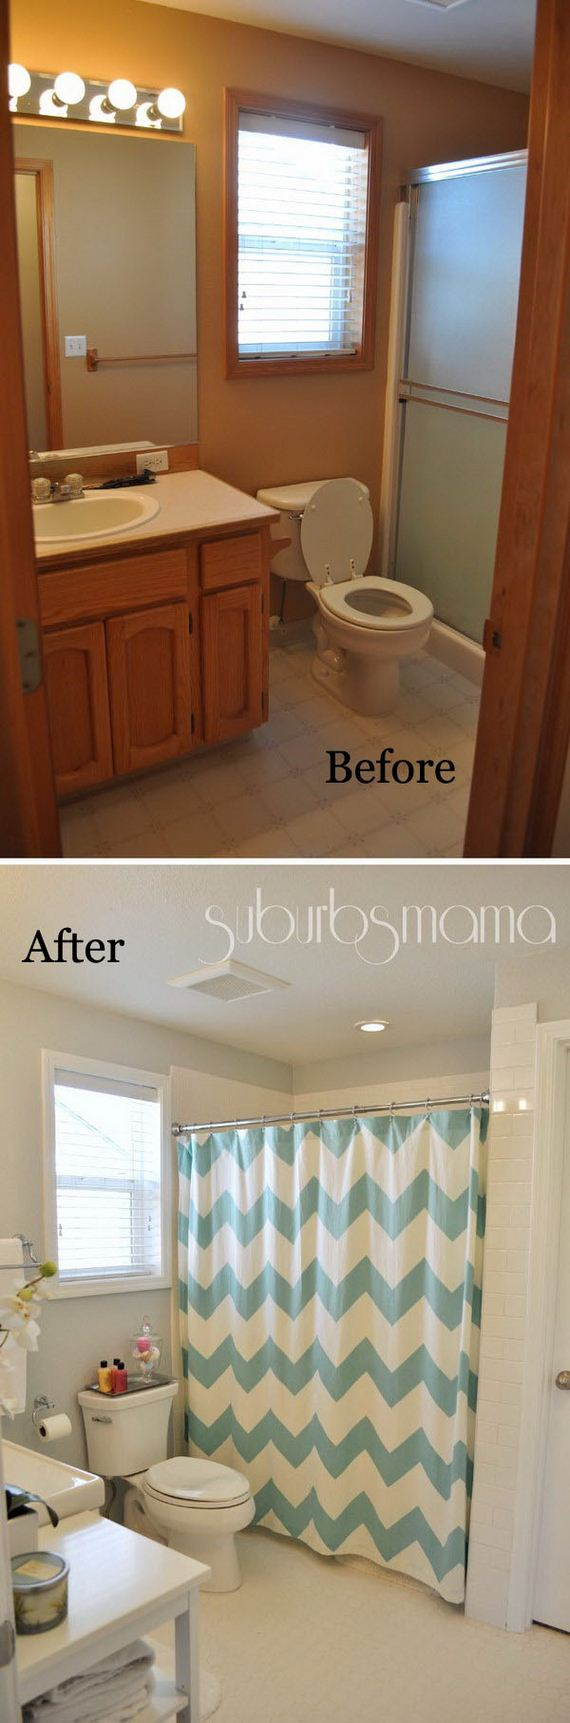 21-awesome-bathroom-makeovers